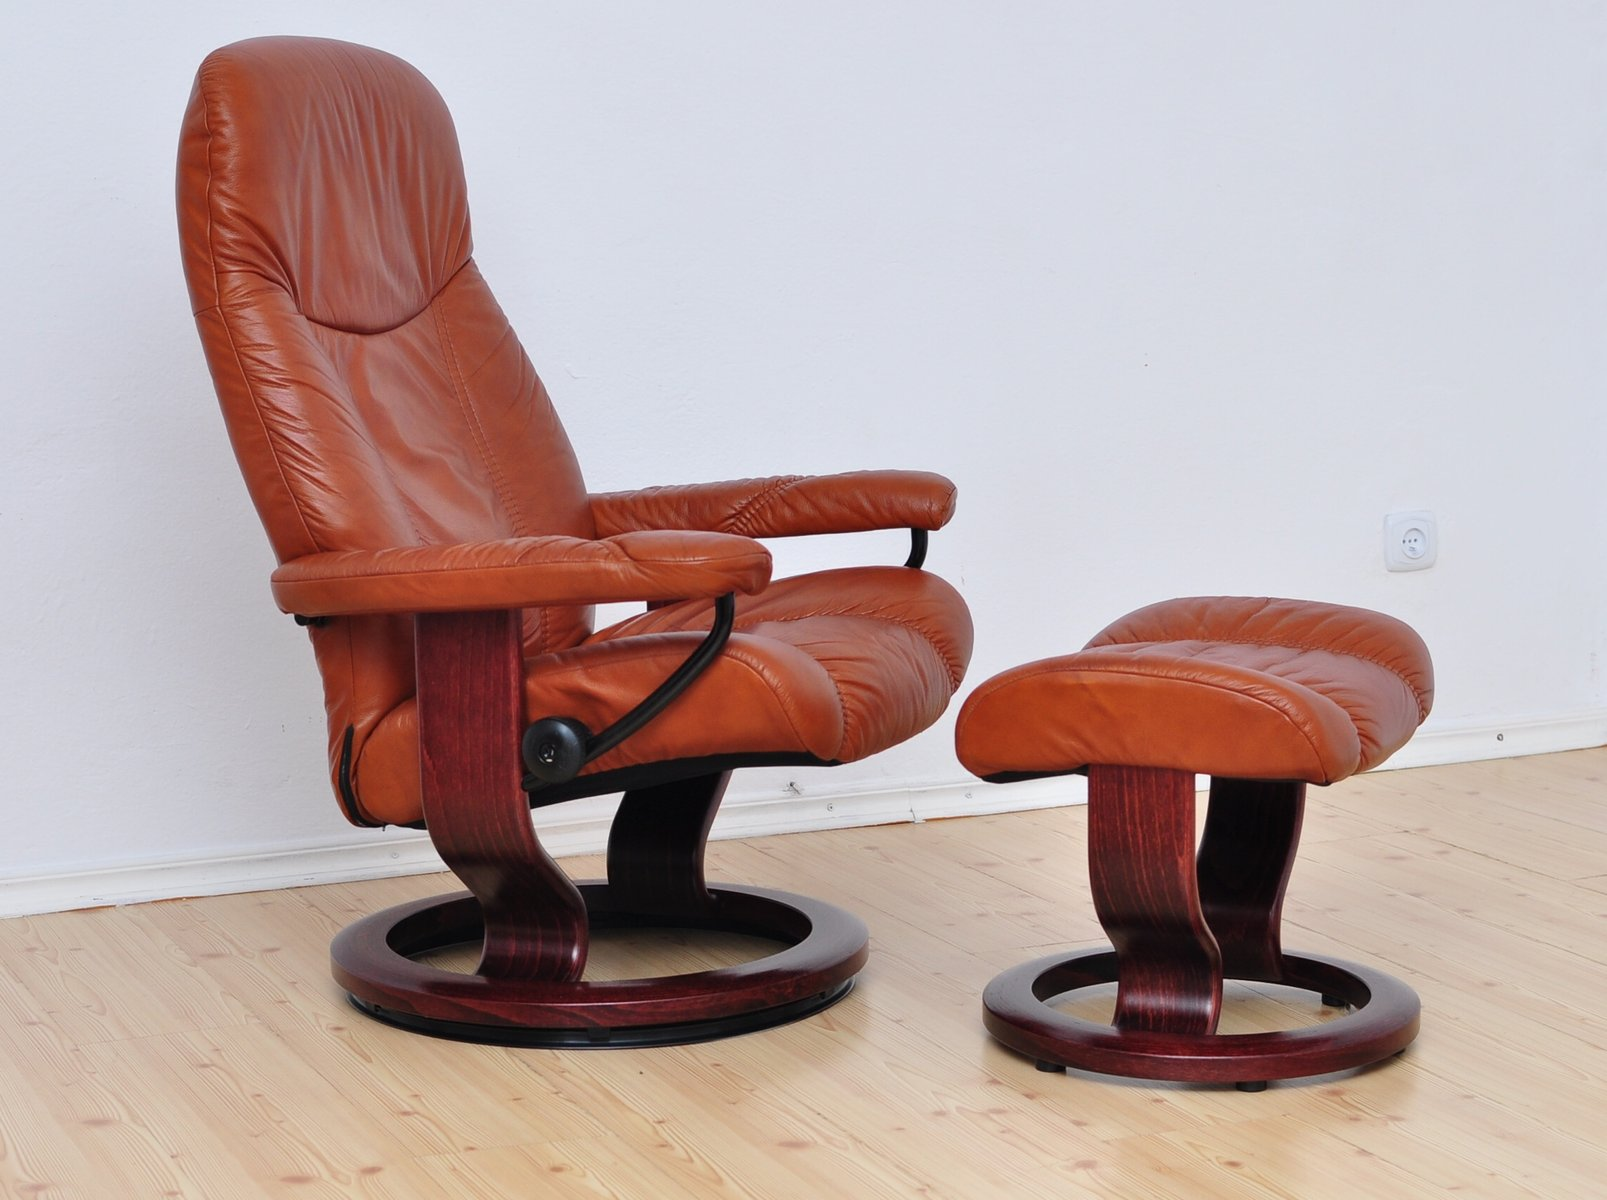 Consul lounge chair ottoman from stressless ekornes for 1980s chair